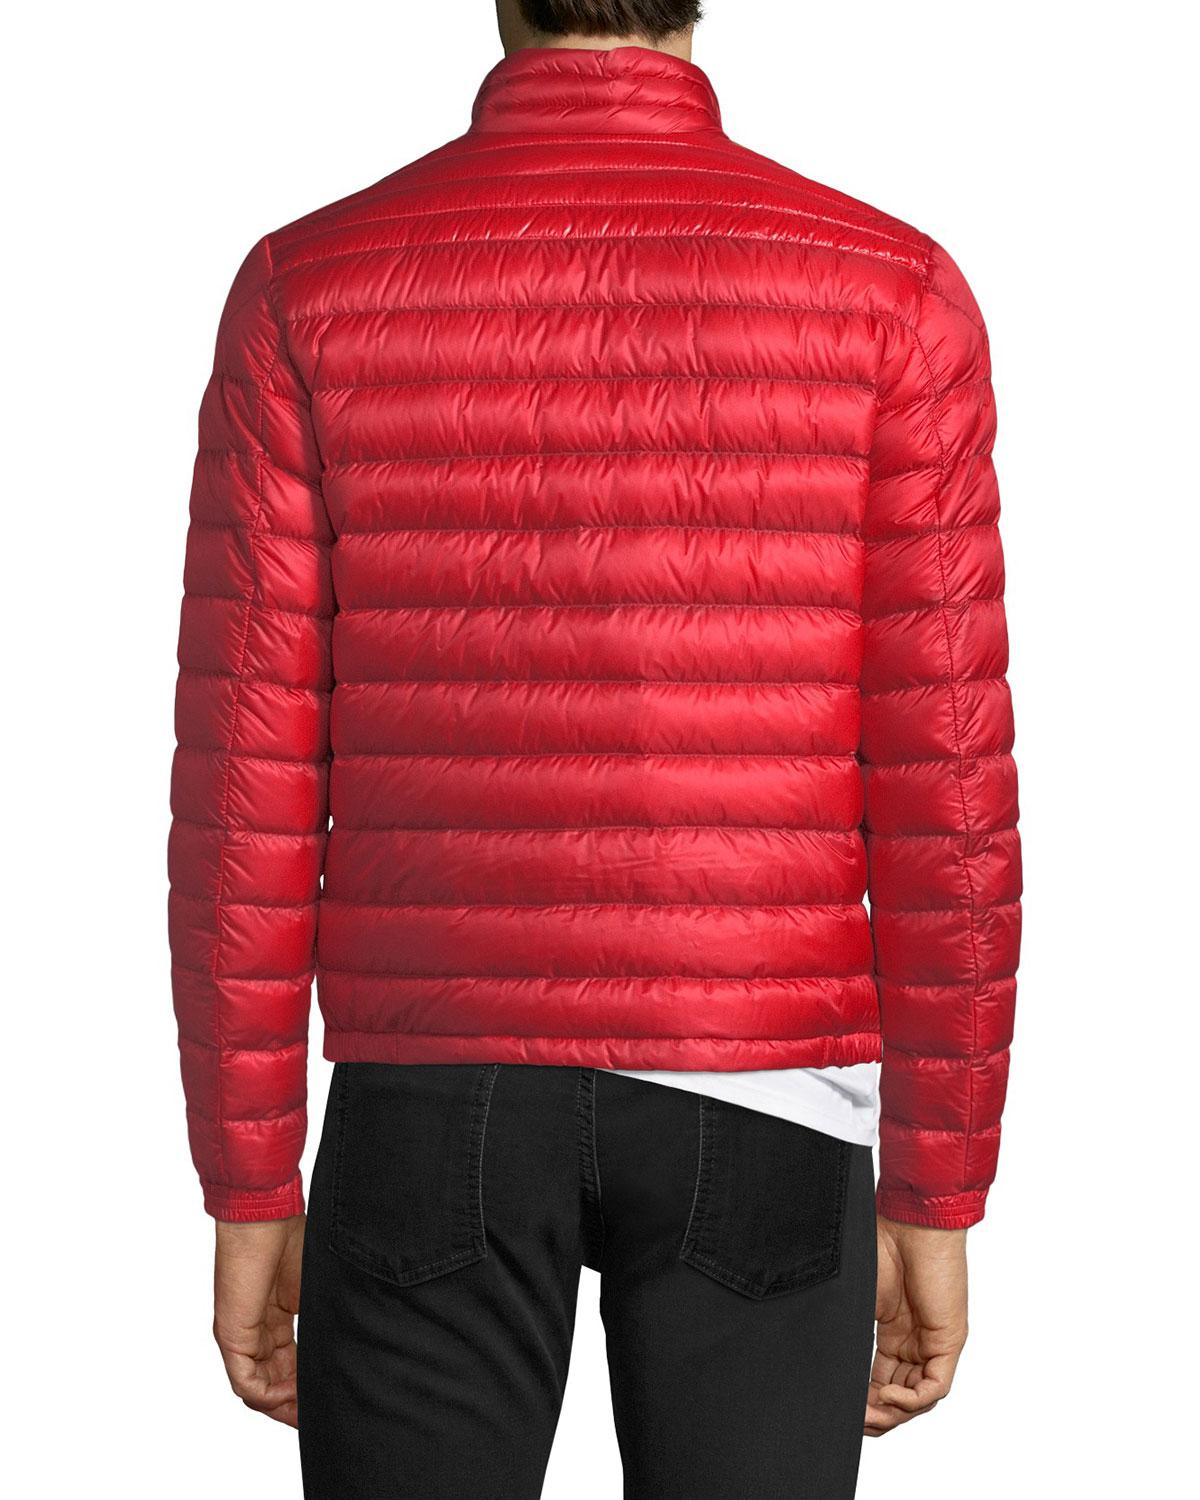 978161e80 Lyst - Moncler Daniel Quilted Puffer Jacket in Red for Men